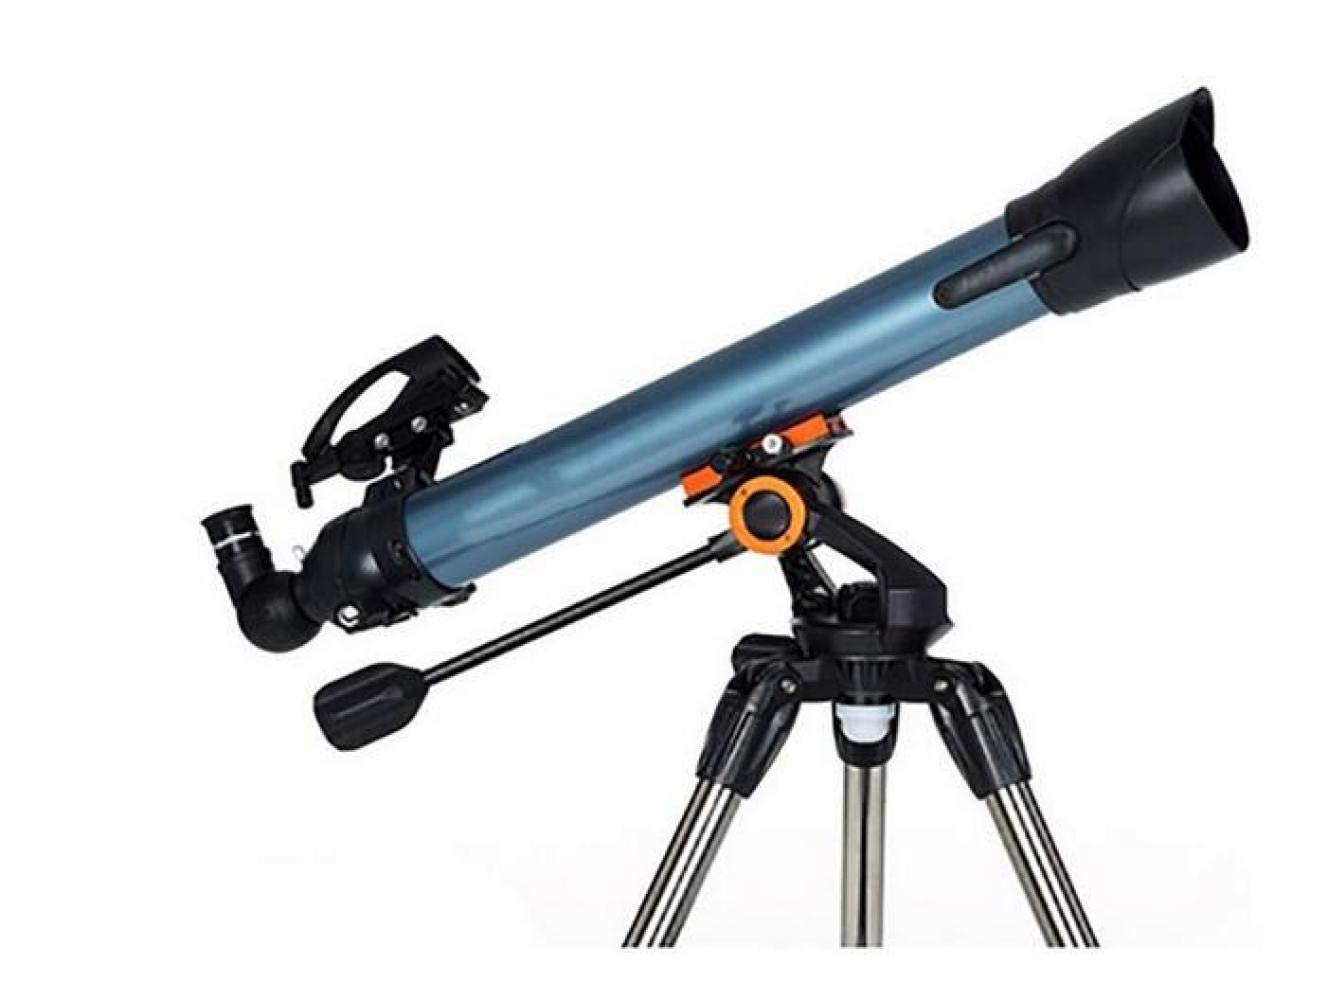 CTO Astronomical Telescope Astronomy Mobile Phone Photo Apocalypse Hd Star Star Star Moon,A,Telescope by CTO (Image #1)